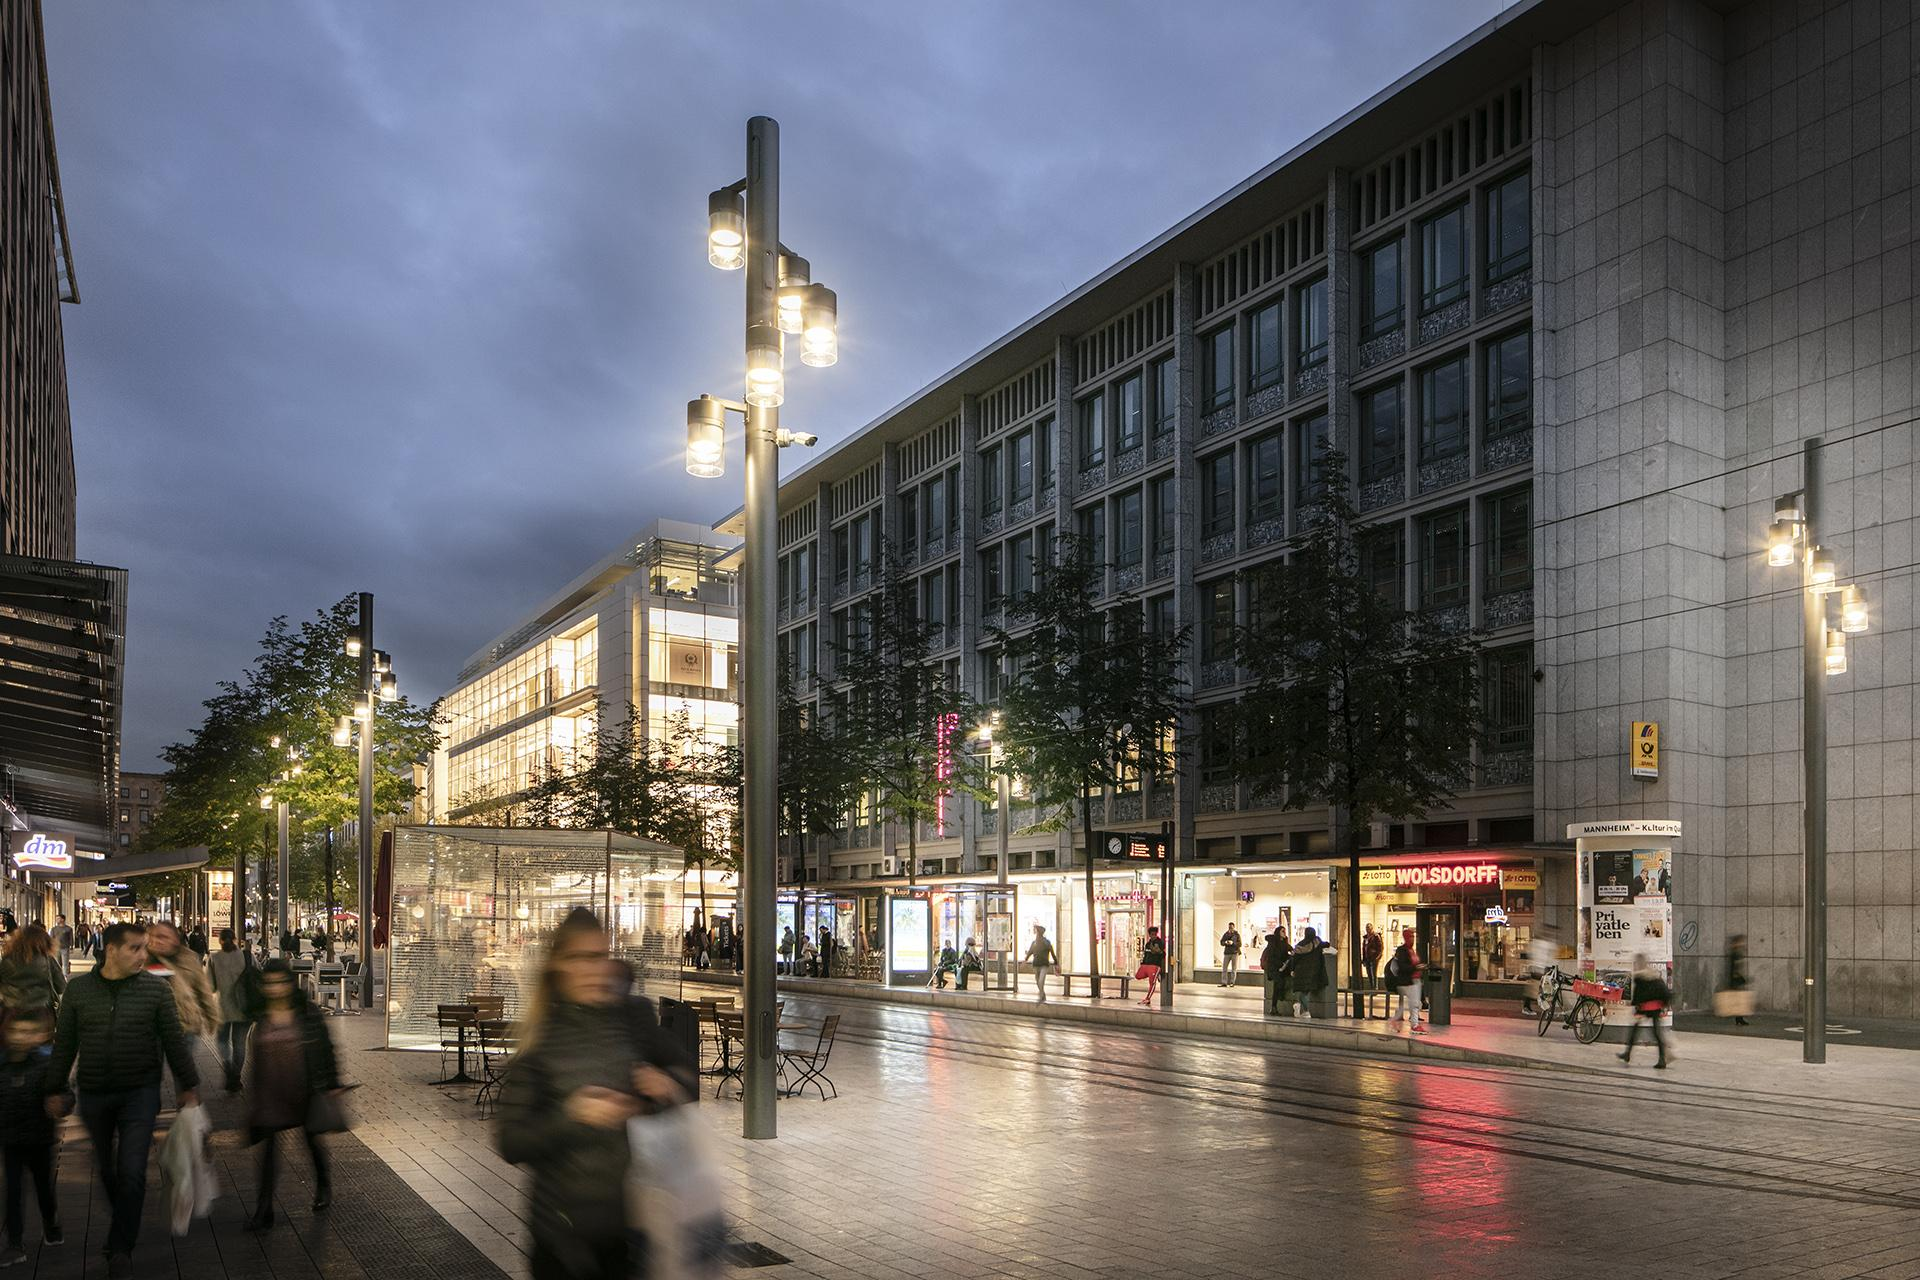 Schréder designed a customised luminaire to light the famous Planken shopping haven that reflects the city's character